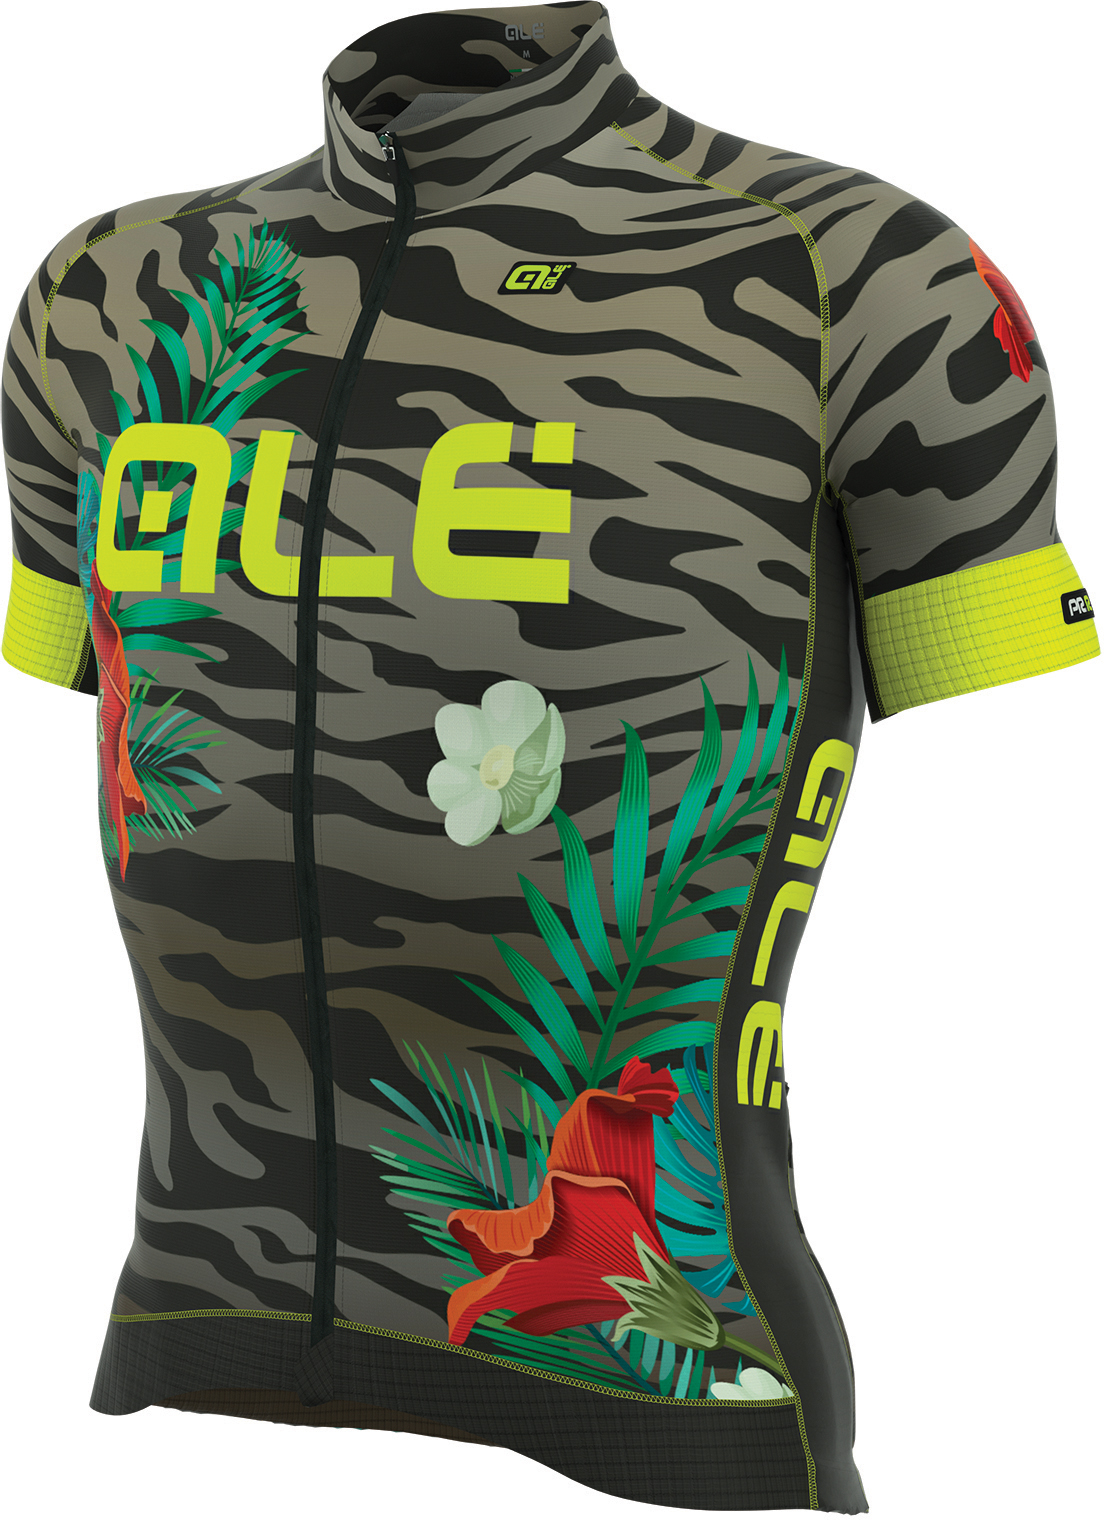 Ale Graphics PRR Flowers Jersey - White | Jerseys